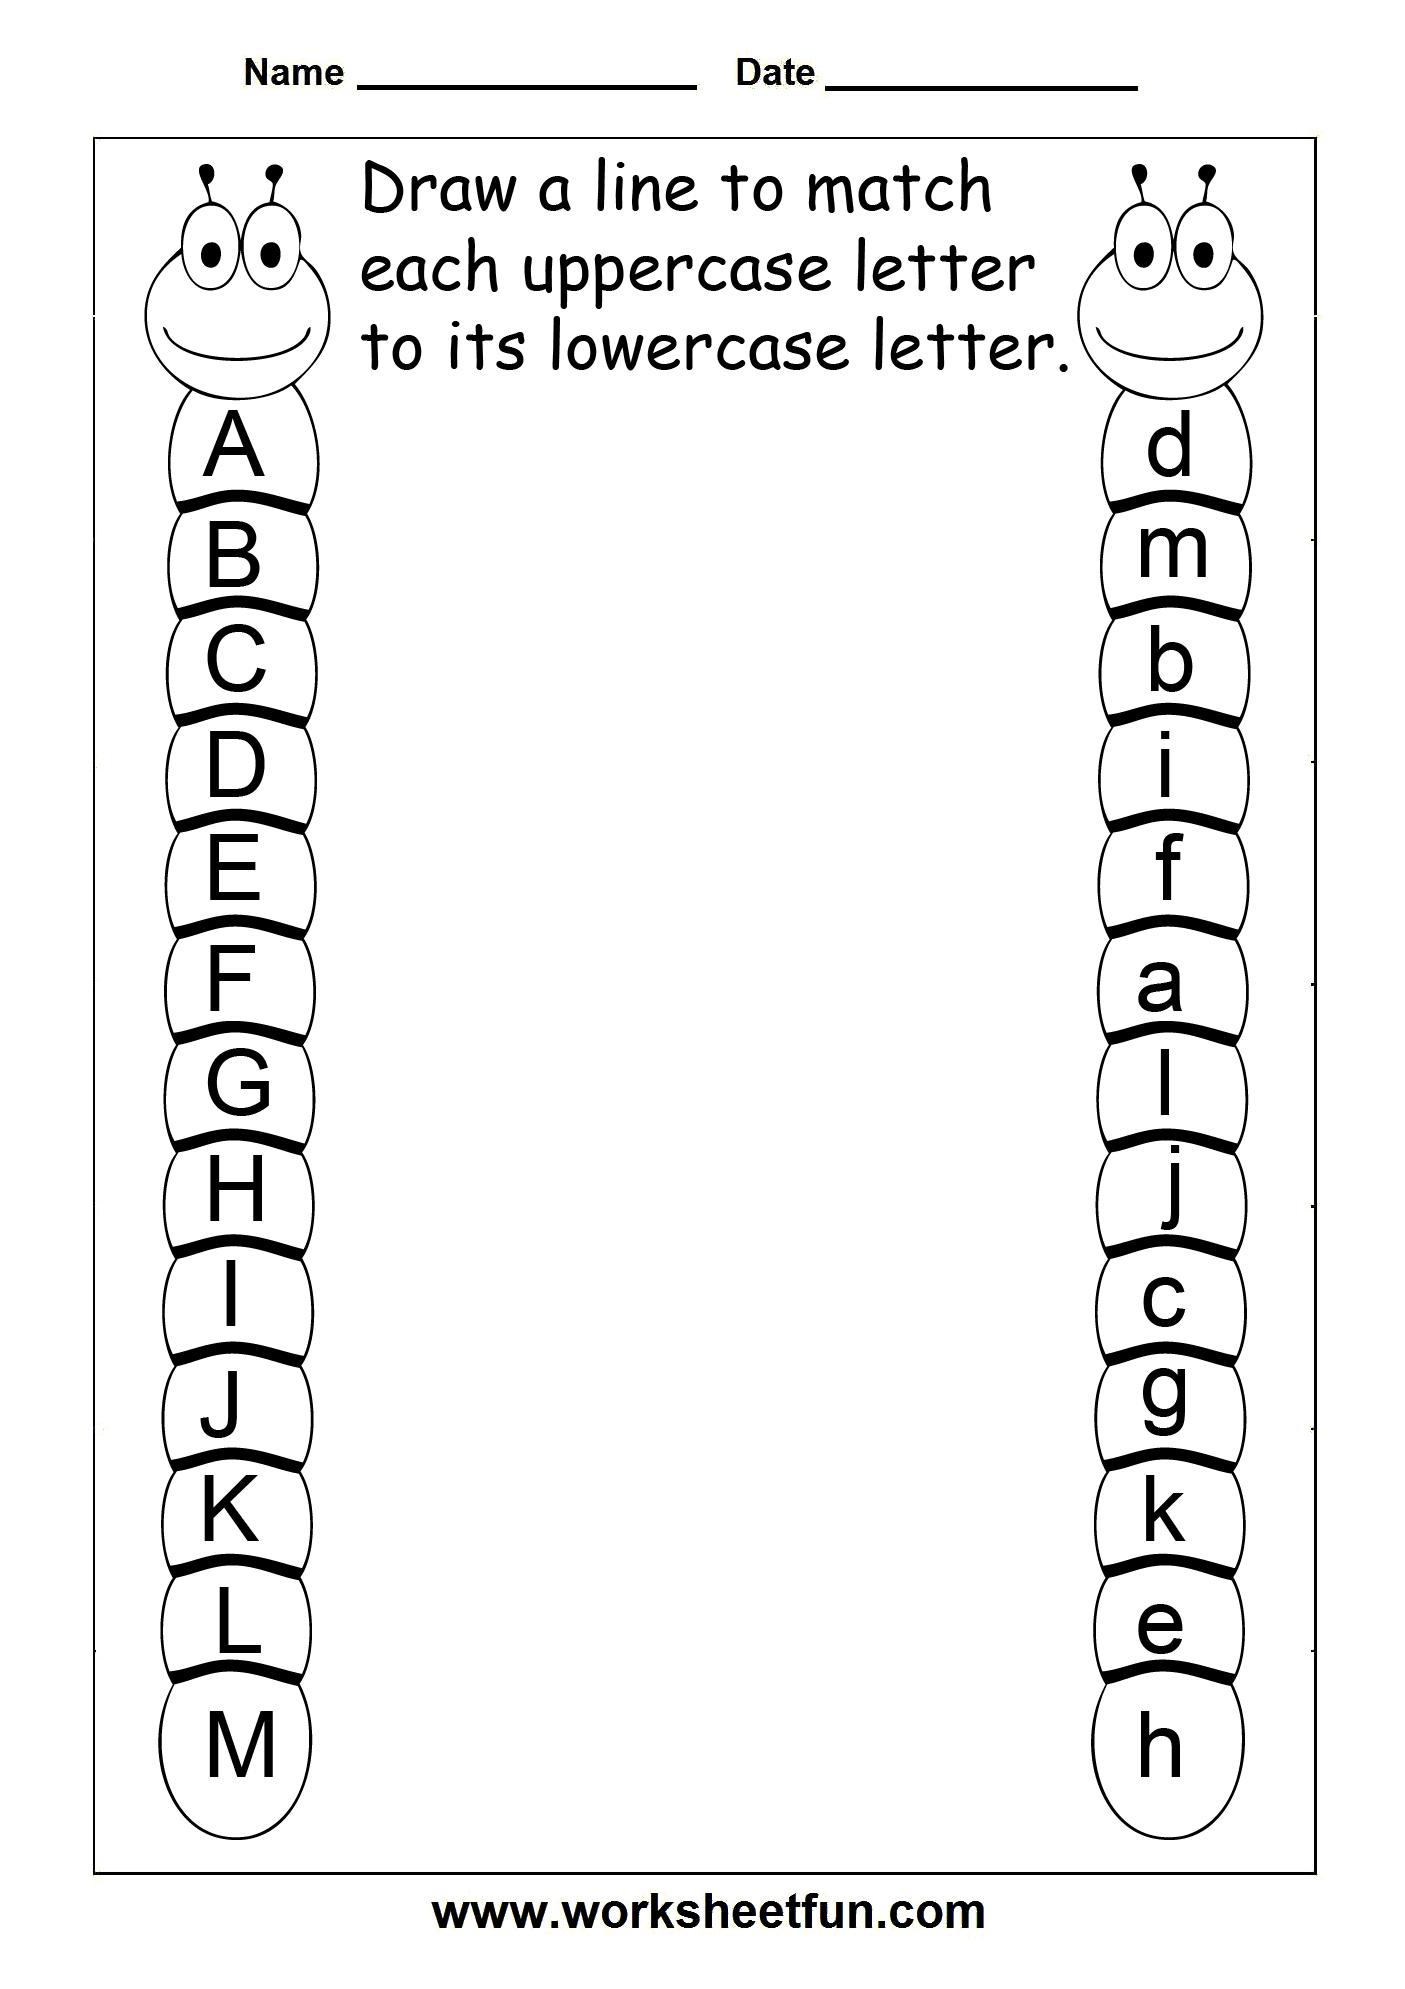 Weirdmailus  Splendid  Images About Work Worksheet On Pinterest  Hidden Pictures  With Remarkable  Images About Work Worksheet On Pinterest  Hidden Pictures Color By Numbers And Puzzles With Enchanting Addition And Subtraction Of Decimals Worksheets Also Persuasive Text Worksheets In Addition Nd Grade Shapes Worksheets And Dinosaur Math Worksheets As Well As Adding Fractions Worksheets Pdf Additionally Electronic Math Worksheets From Pinterestcom With Weirdmailus  Remarkable  Images About Work Worksheet On Pinterest  Hidden Pictures  With Enchanting  Images About Work Worksheet On Pinterest  Hidden Pictures Color By Numbers And Puzzles And Splendid Addition And Subtraction Of Decimals Worksheets Also Persuasive Text Worksheets In Addition Nd Grade Shapes Worksheets From Pinterestcom